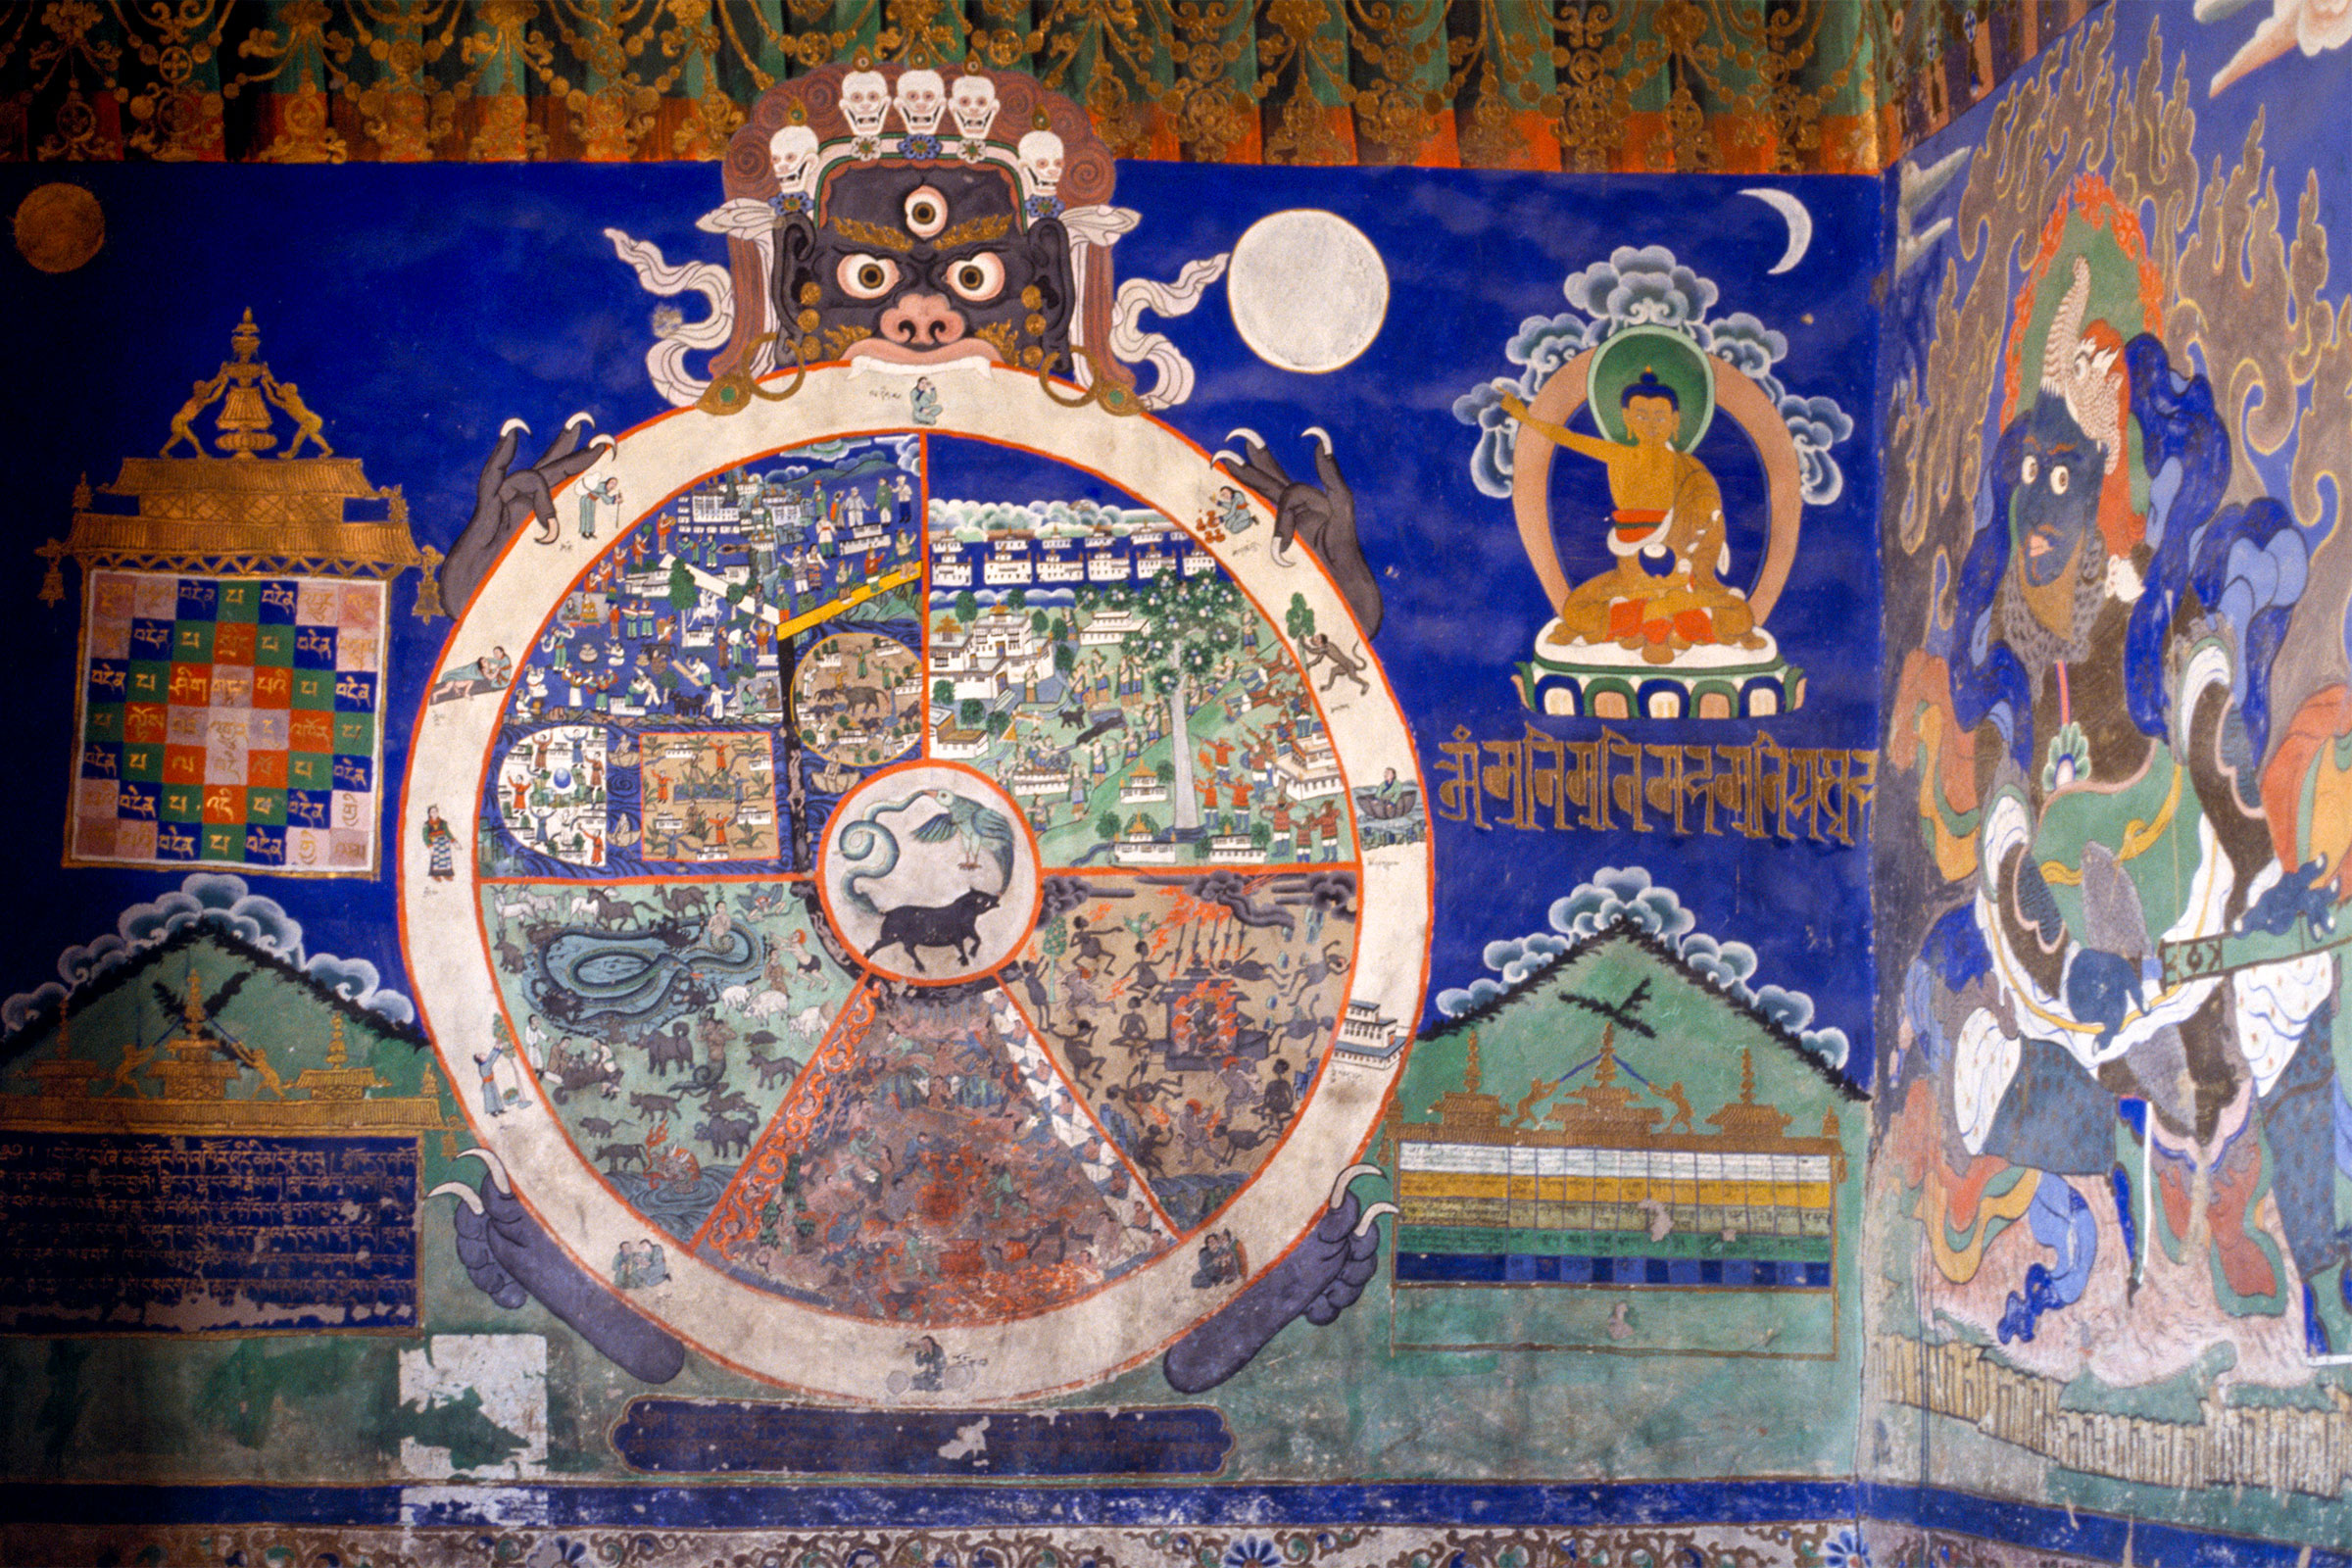 A fresco in a Buddhist monastery in India depicting The Wheel of Existence. Eye Ubiquitous/Alamy